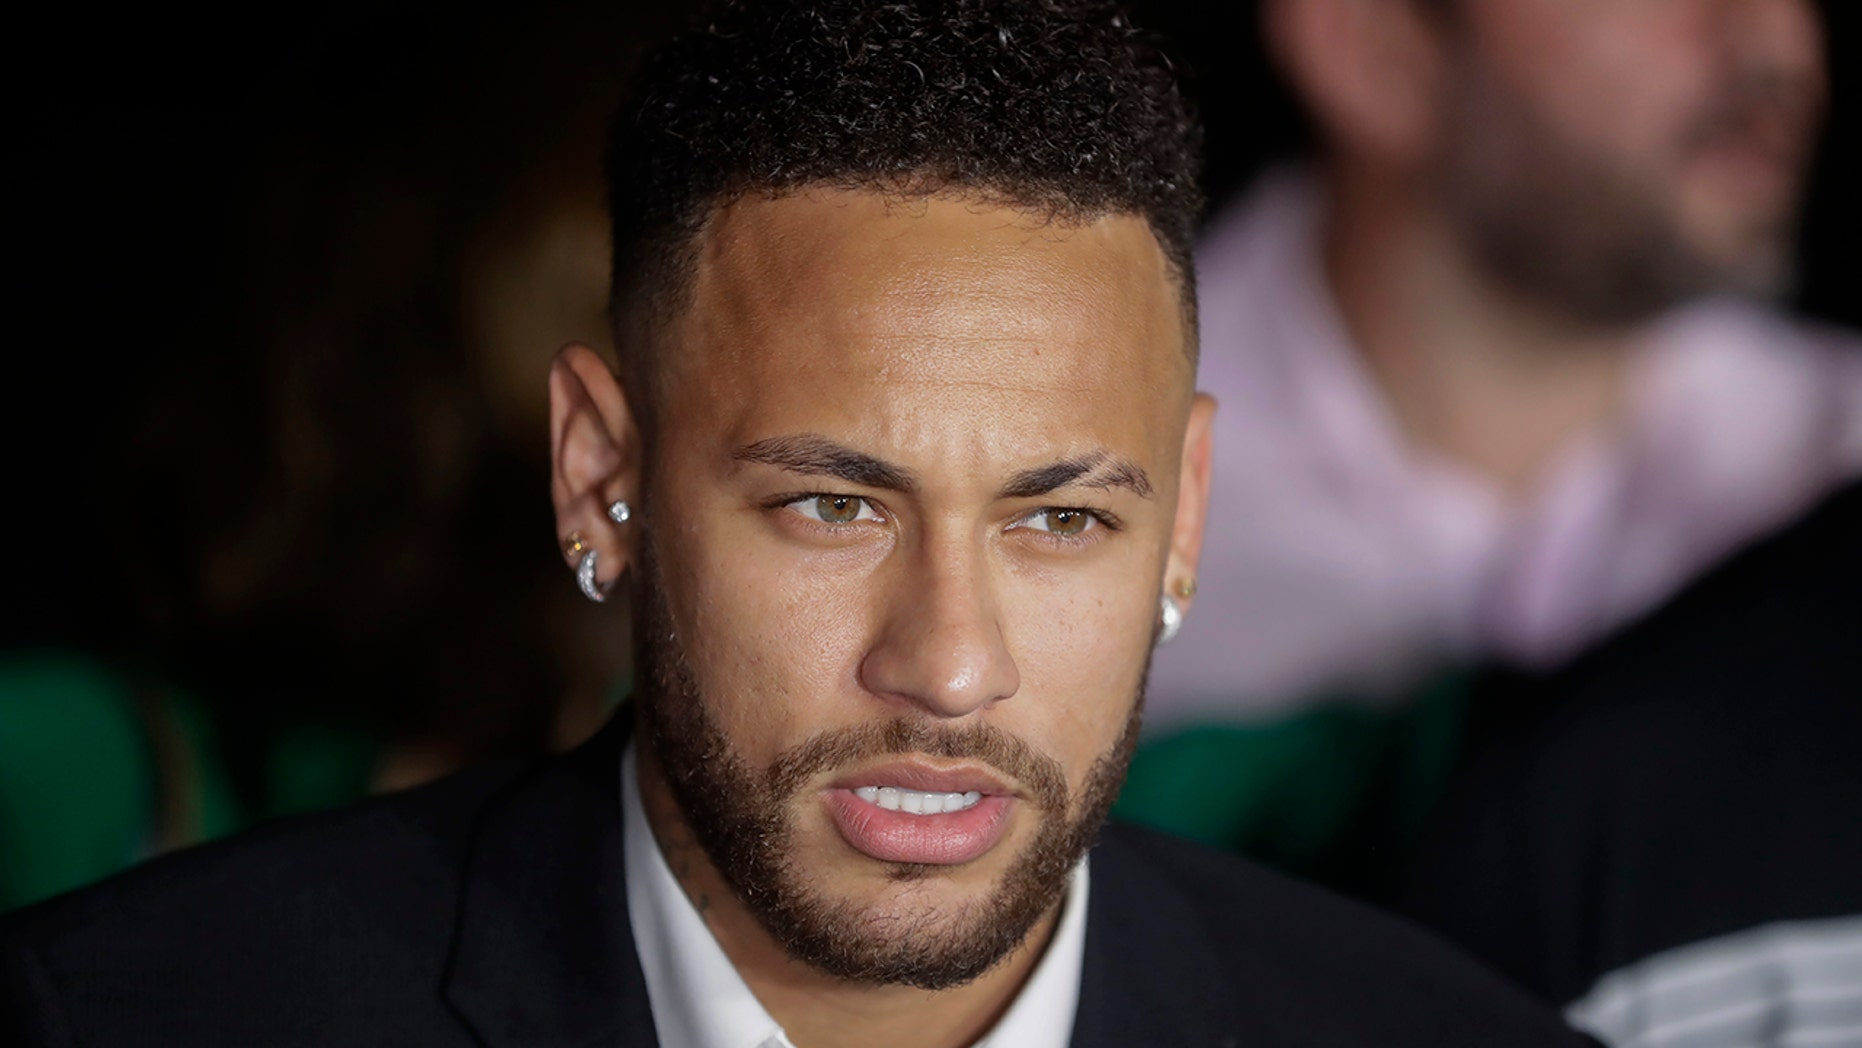 Brazil's soccer player Neymar speaks to the press as he leaves a police station where he answered questions about rape allegations against him in Sao Paulo, Brazil, Thursday, June 13, 2019. Neymar denies any wrongdoing. (AP Photo/Andre Penner)